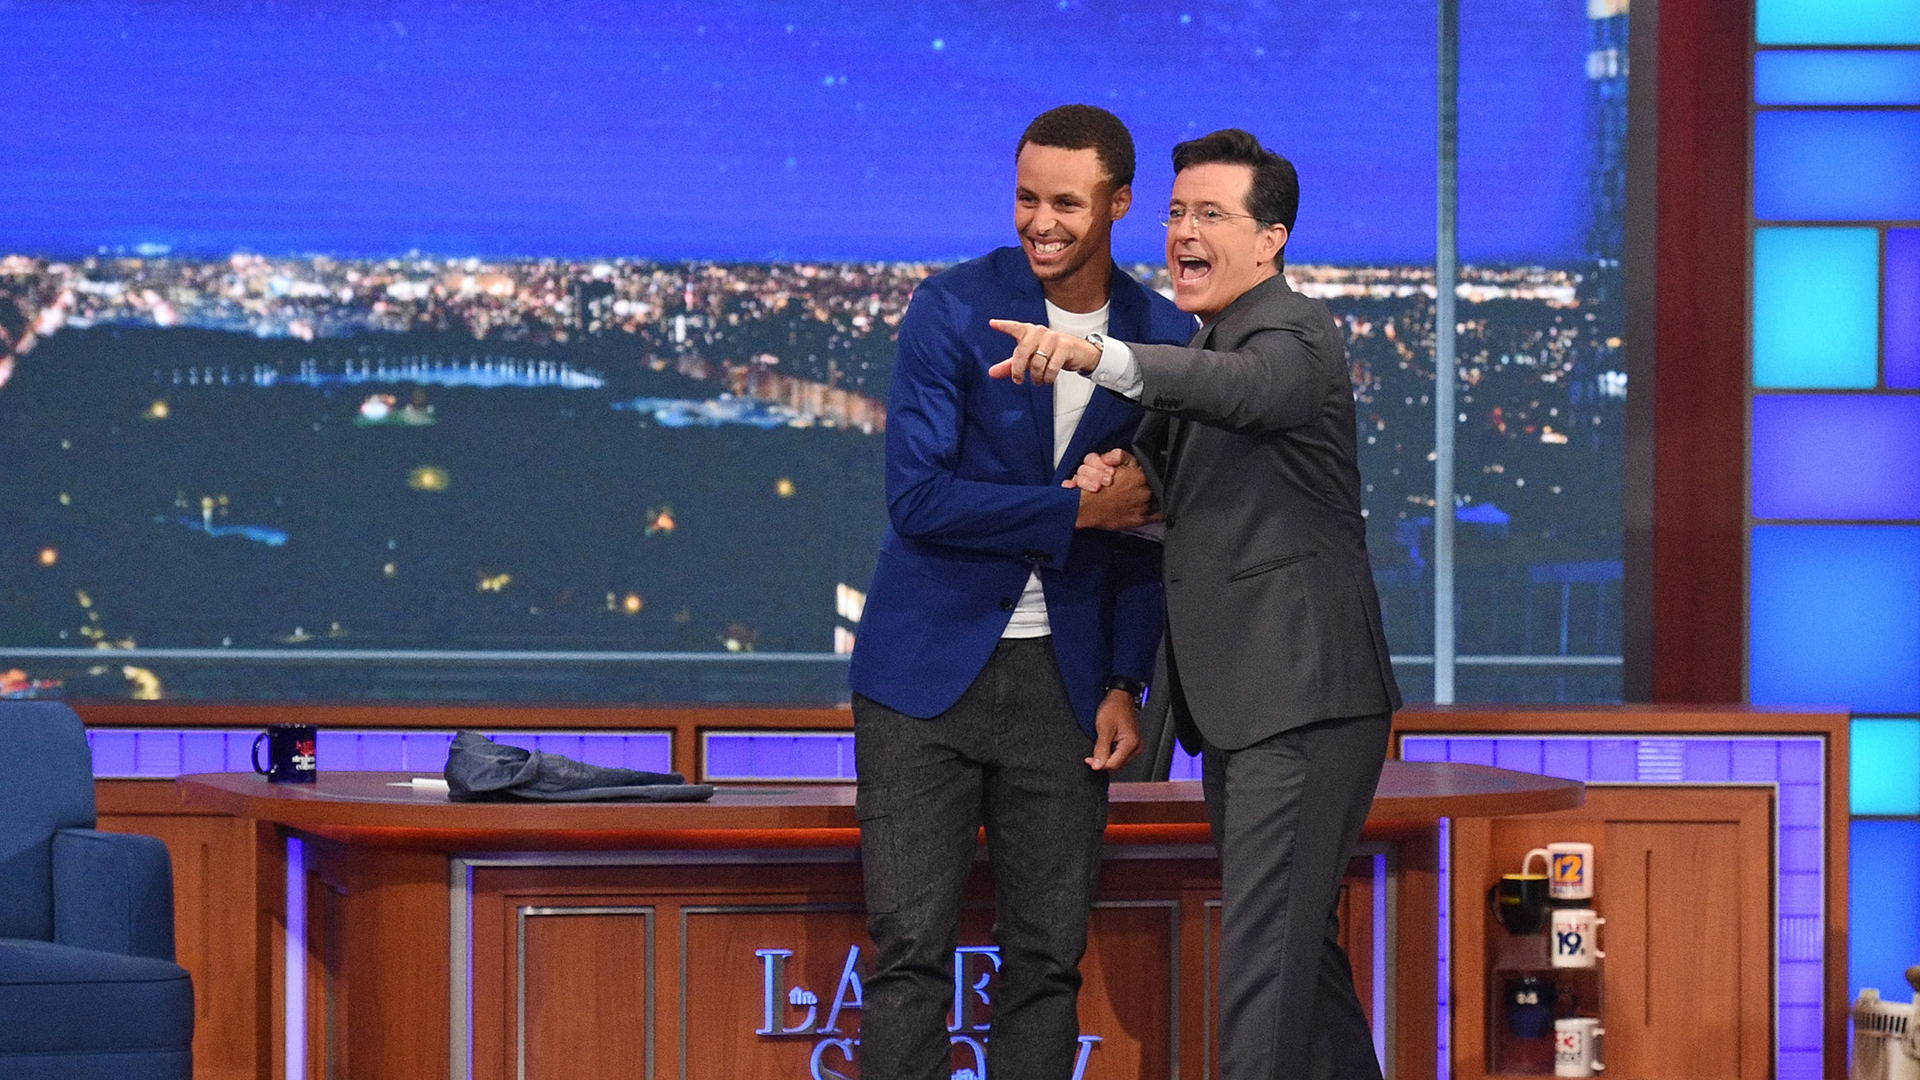 Stephen Curry and Stephen Colbert